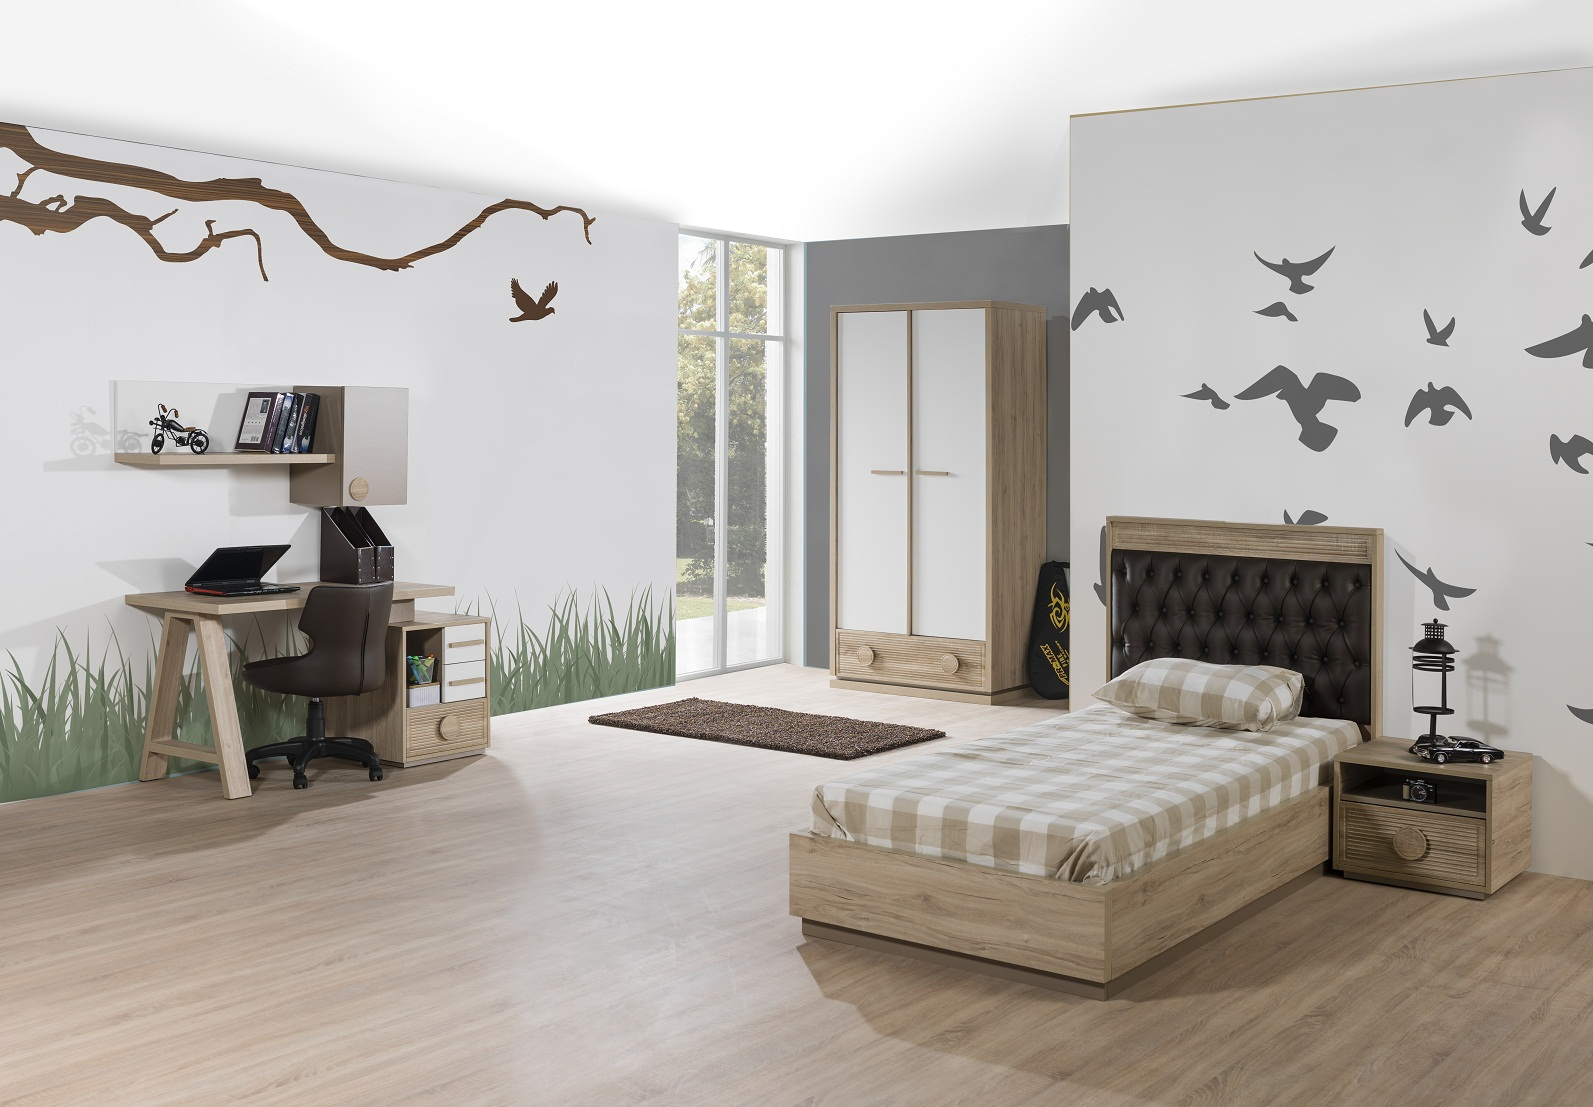 kinderzimmer alfa bett 90x200 cm natur braun weiss. Black Bedroom Furniture Sets. Home Design Ideas